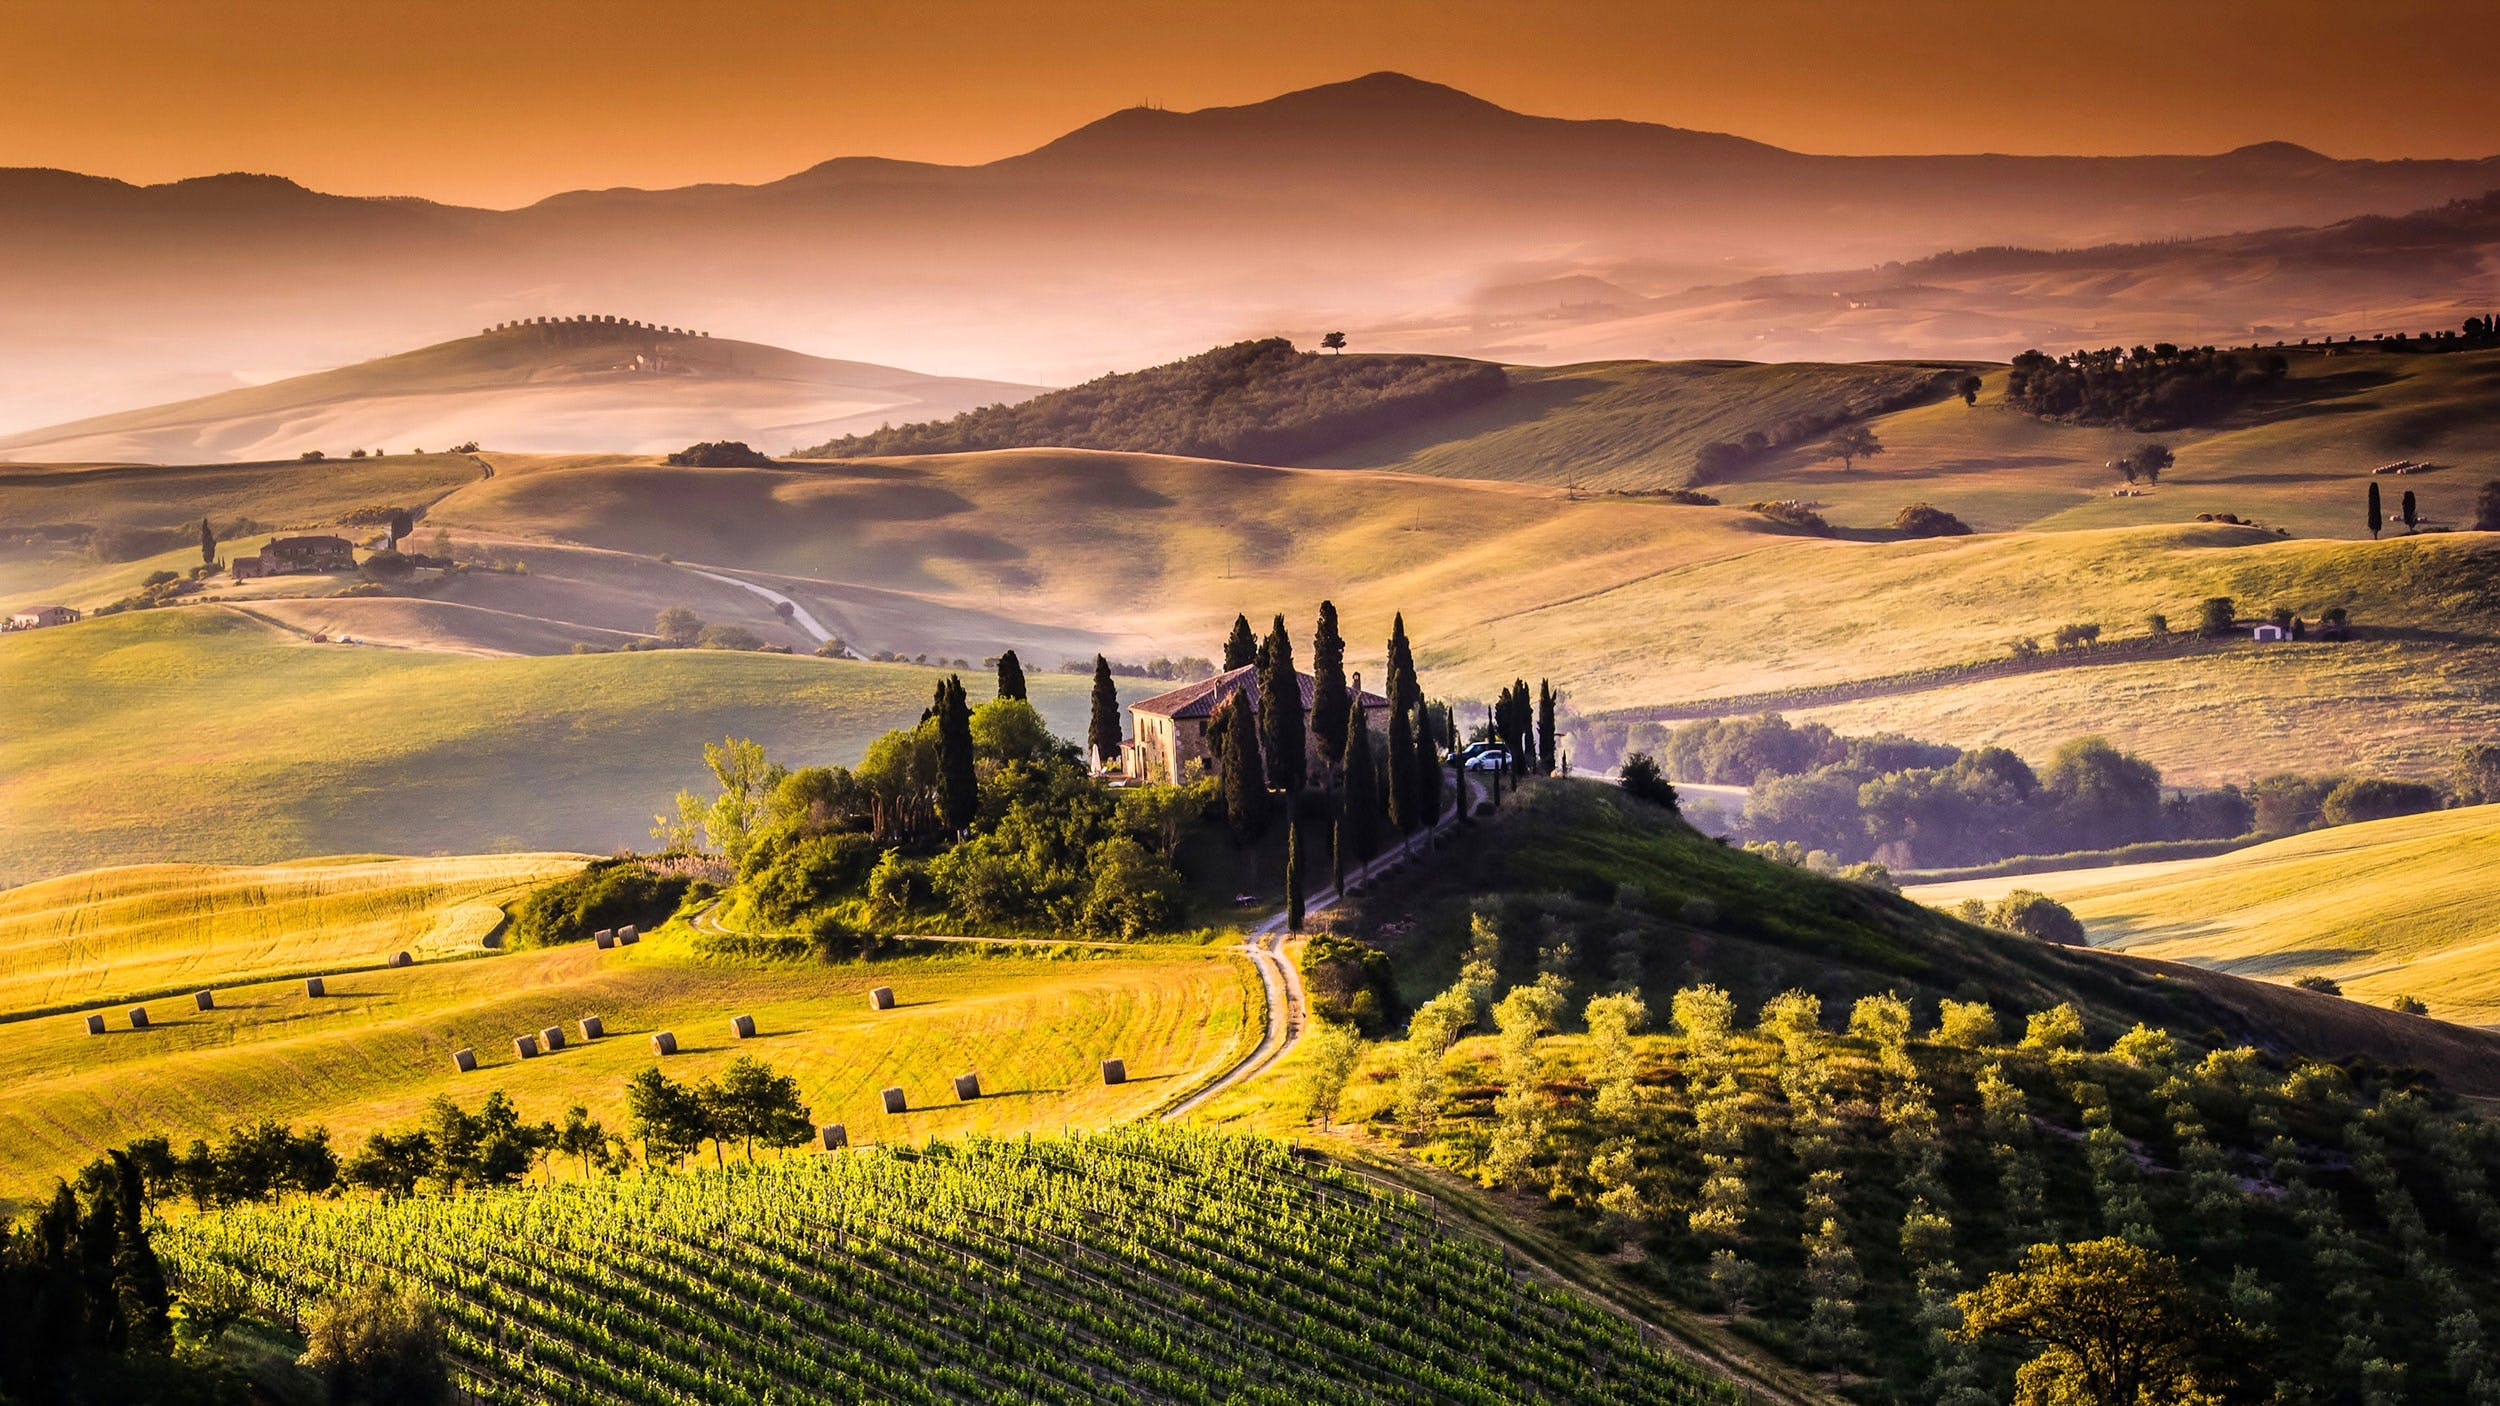 Tuscany travel guide for first-time visitors - Best Places to Visit in Europe - planningforeurope.com (4)